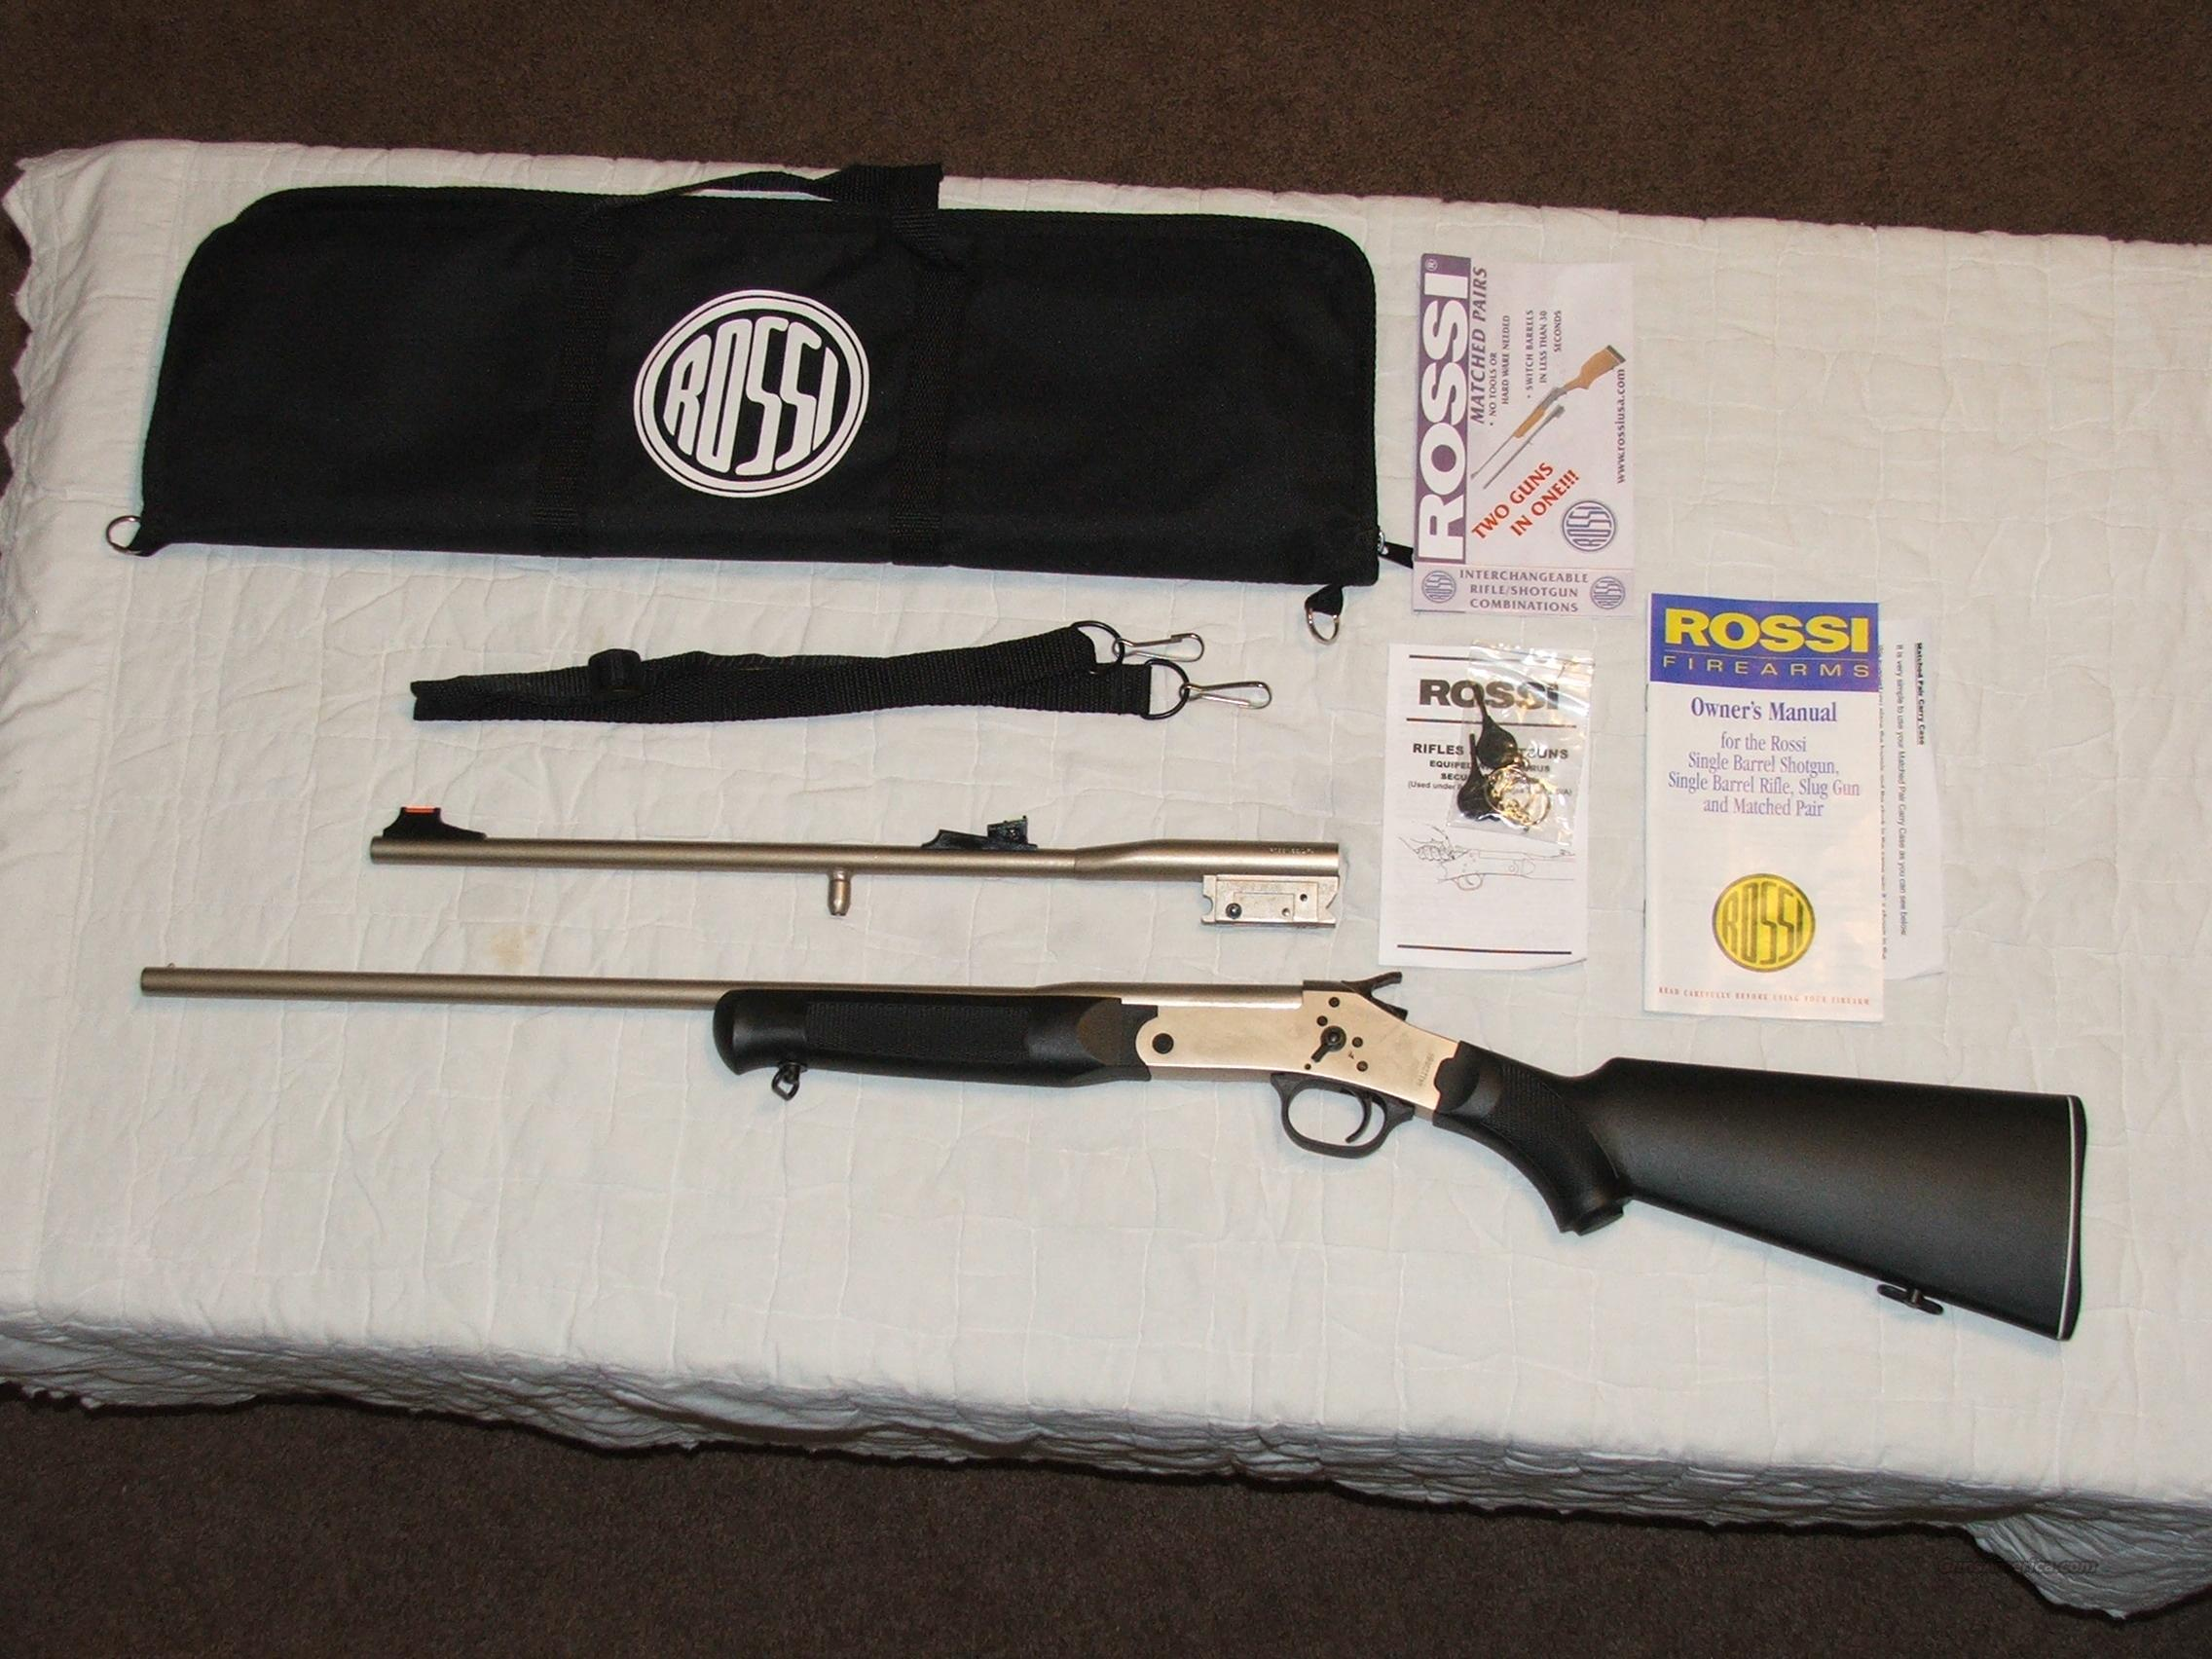 Braztech|Rossi 22LR|410 Gauge   Guns > Rifles > Rossi Rifles > Other